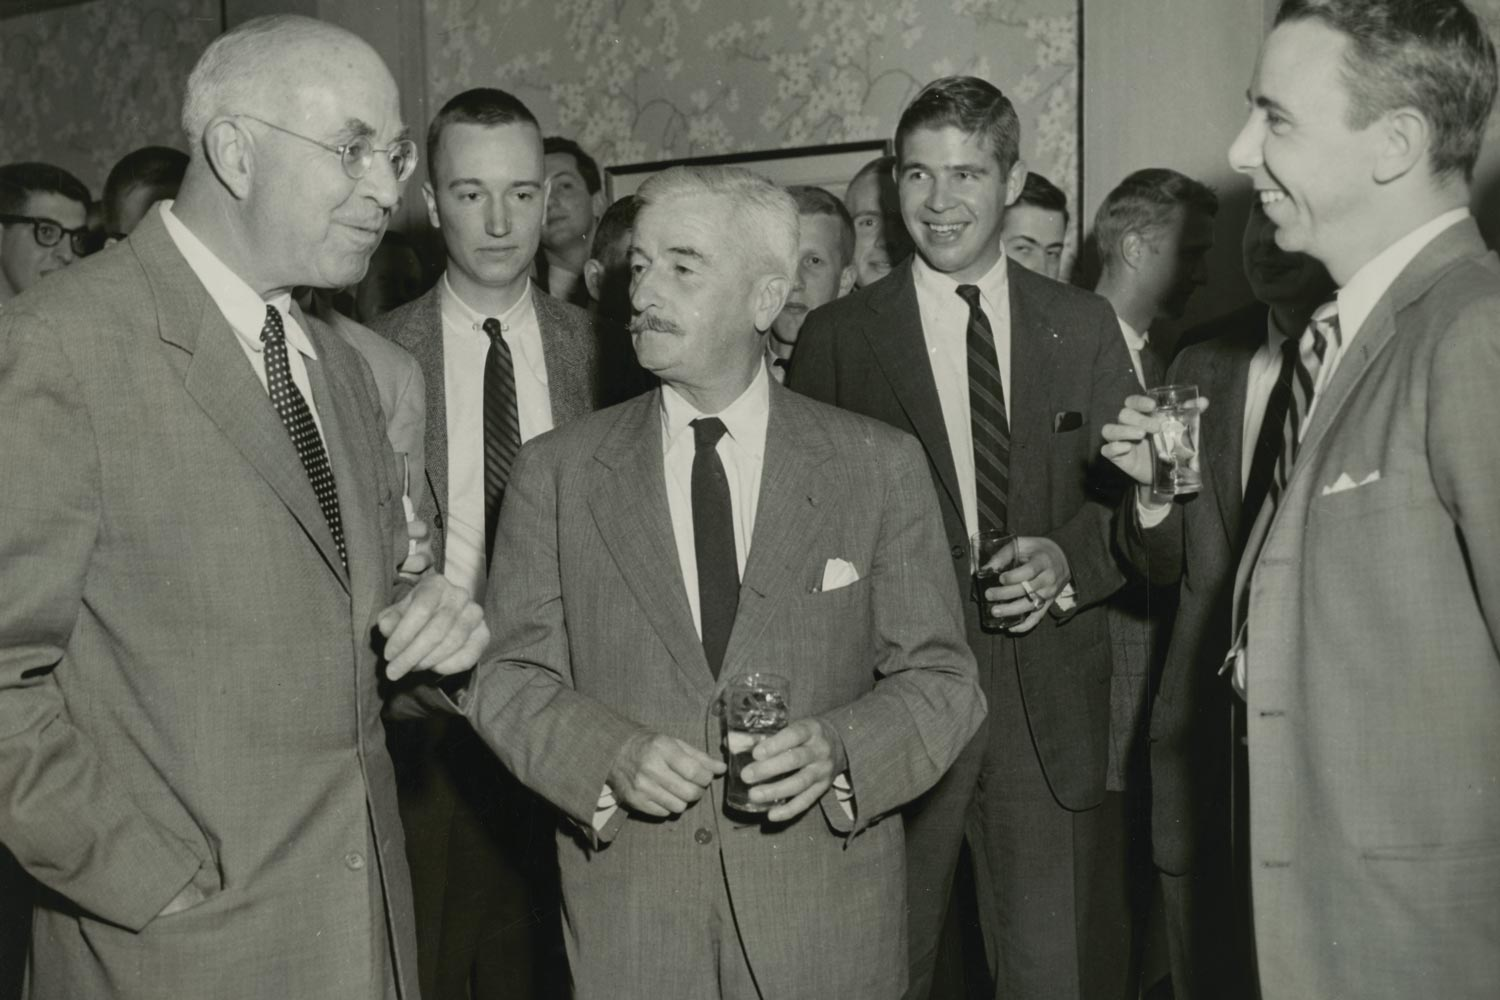 William Faulkner, center, and John Dos Passos, left, at a 1957 reception following an open Jefferson Society lecture delivered by Dos Passos. Faulkner was writer-in-residence at UVA from 1957-58.